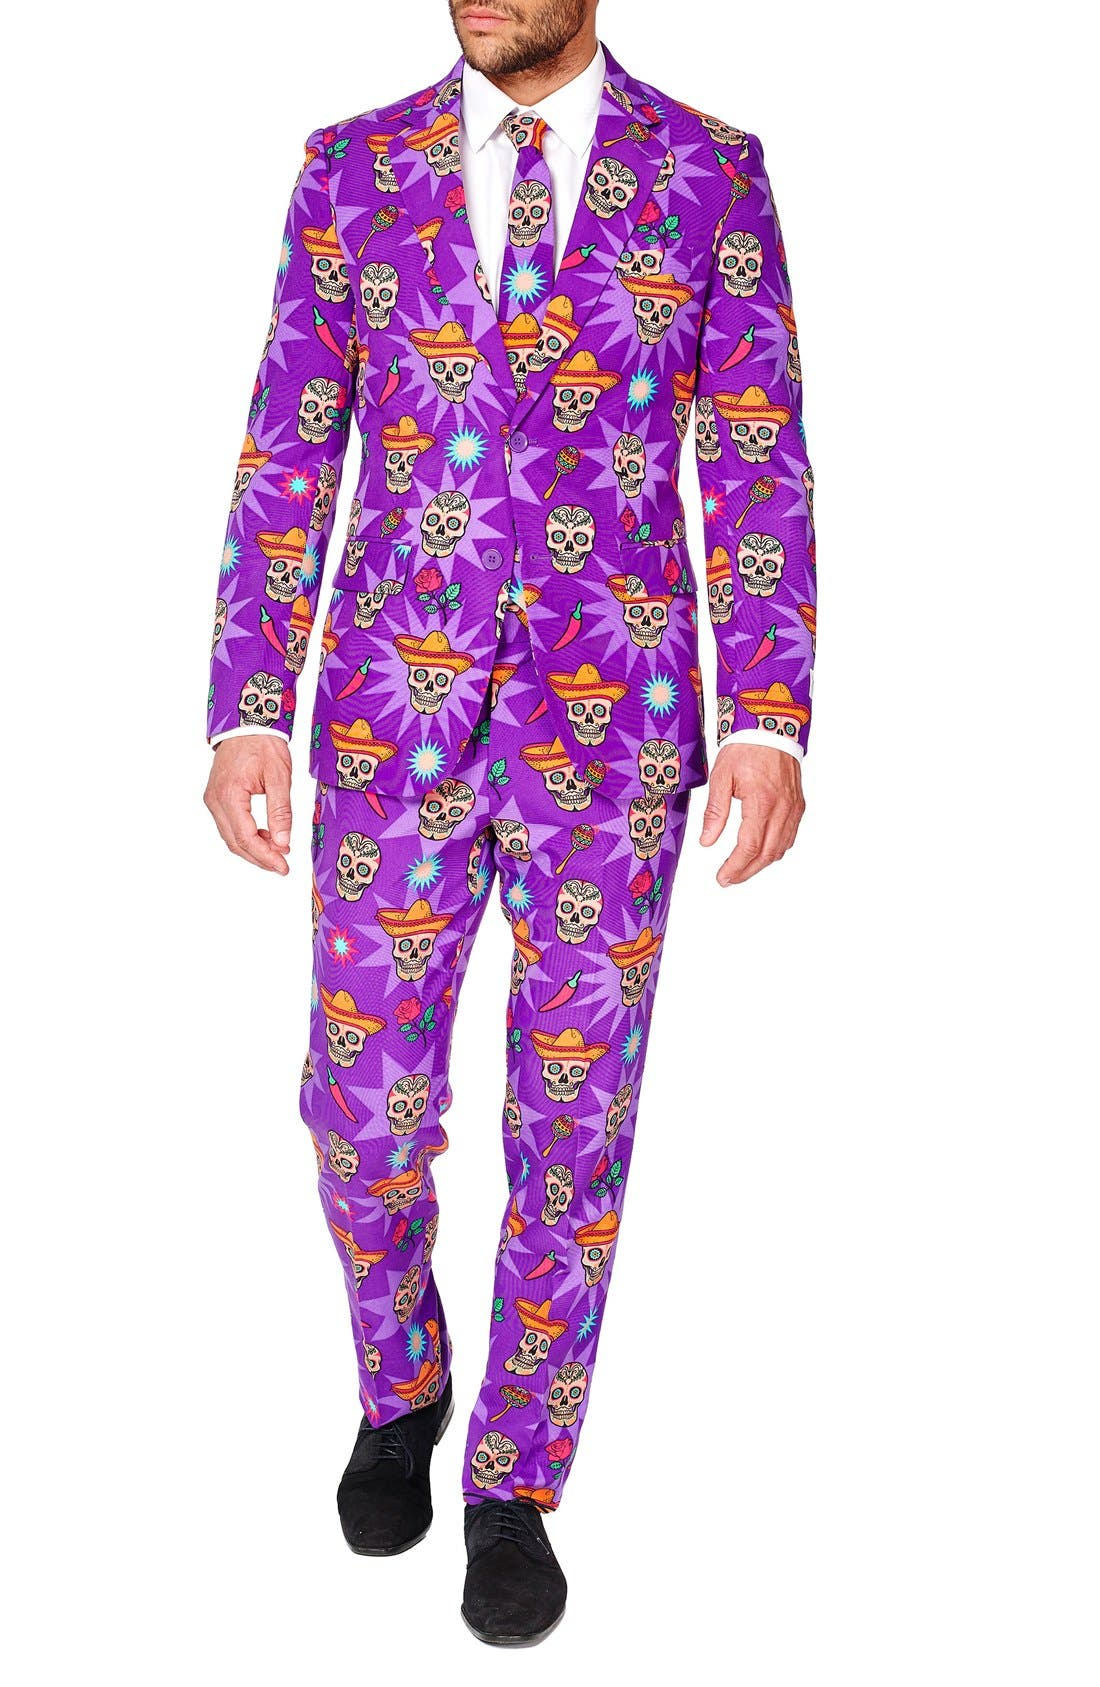 'El Muerto' Trim Fit Two-Piece Suit with Tie,                             Alternate thumbnail 4, color,                             Purple